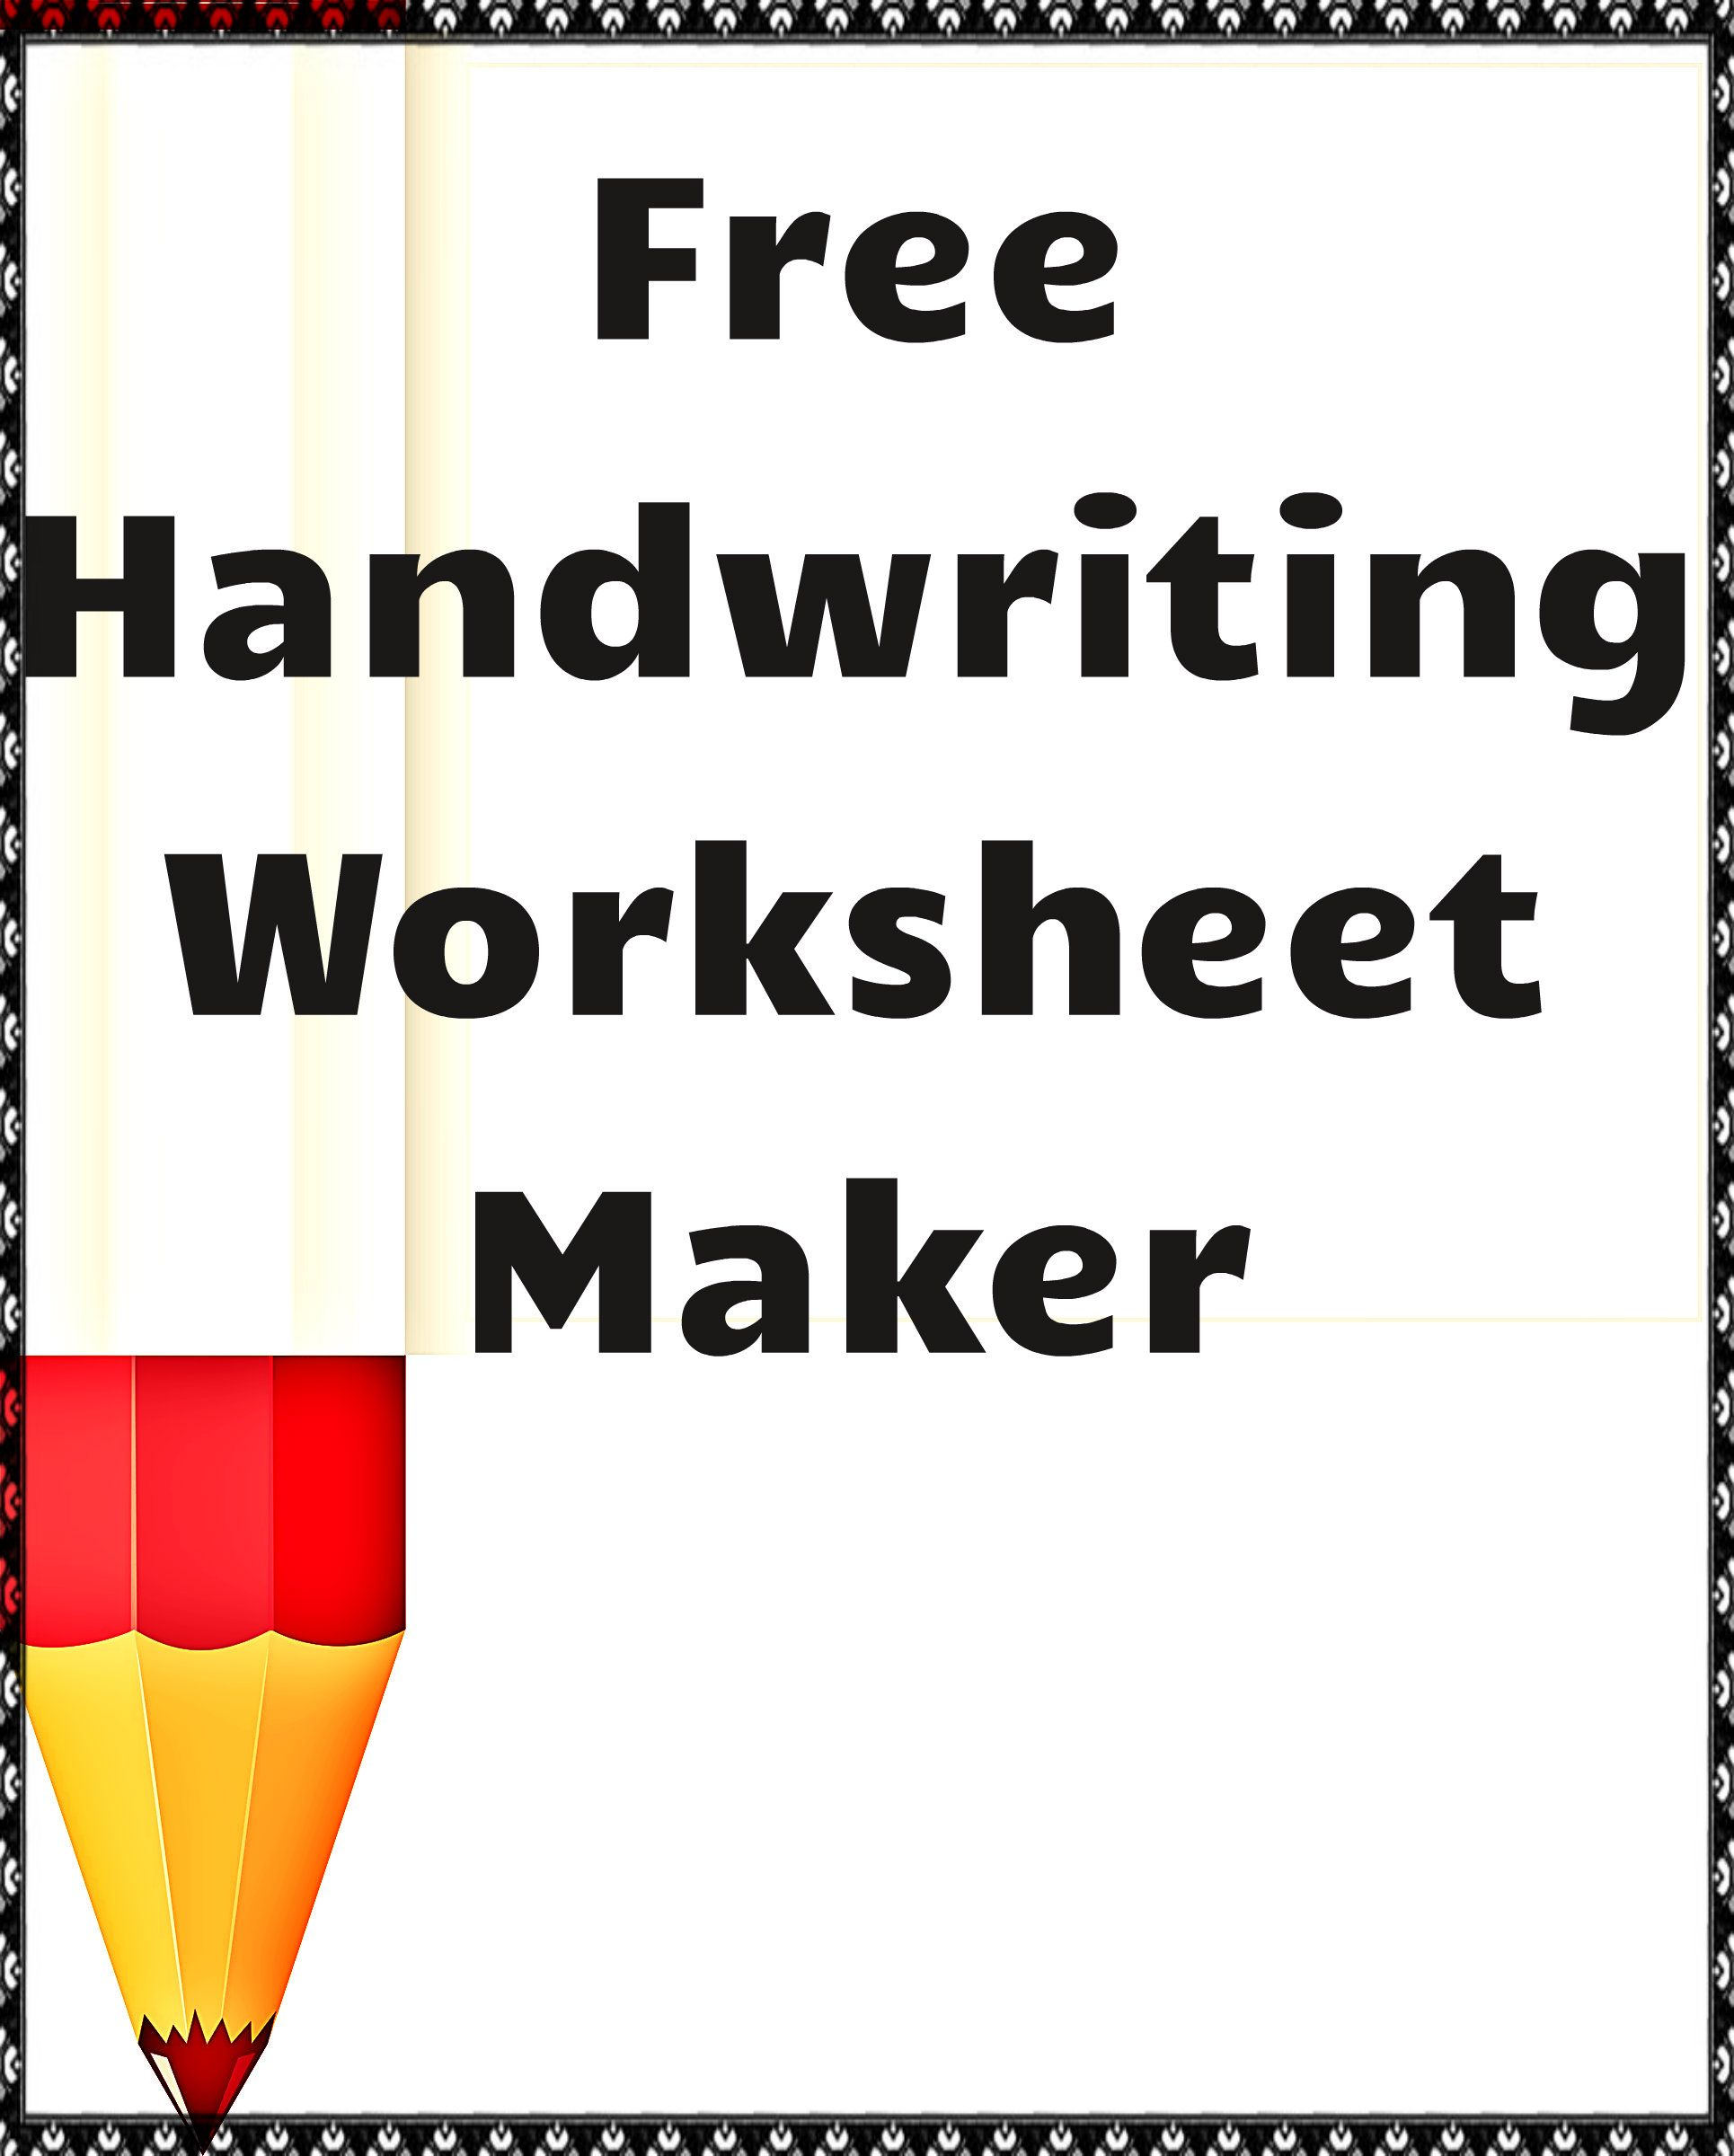 Free Worksheet Free Worksheet Creator 17 best images about worksheets on pinterest handwriting 3rd grade math and telling time